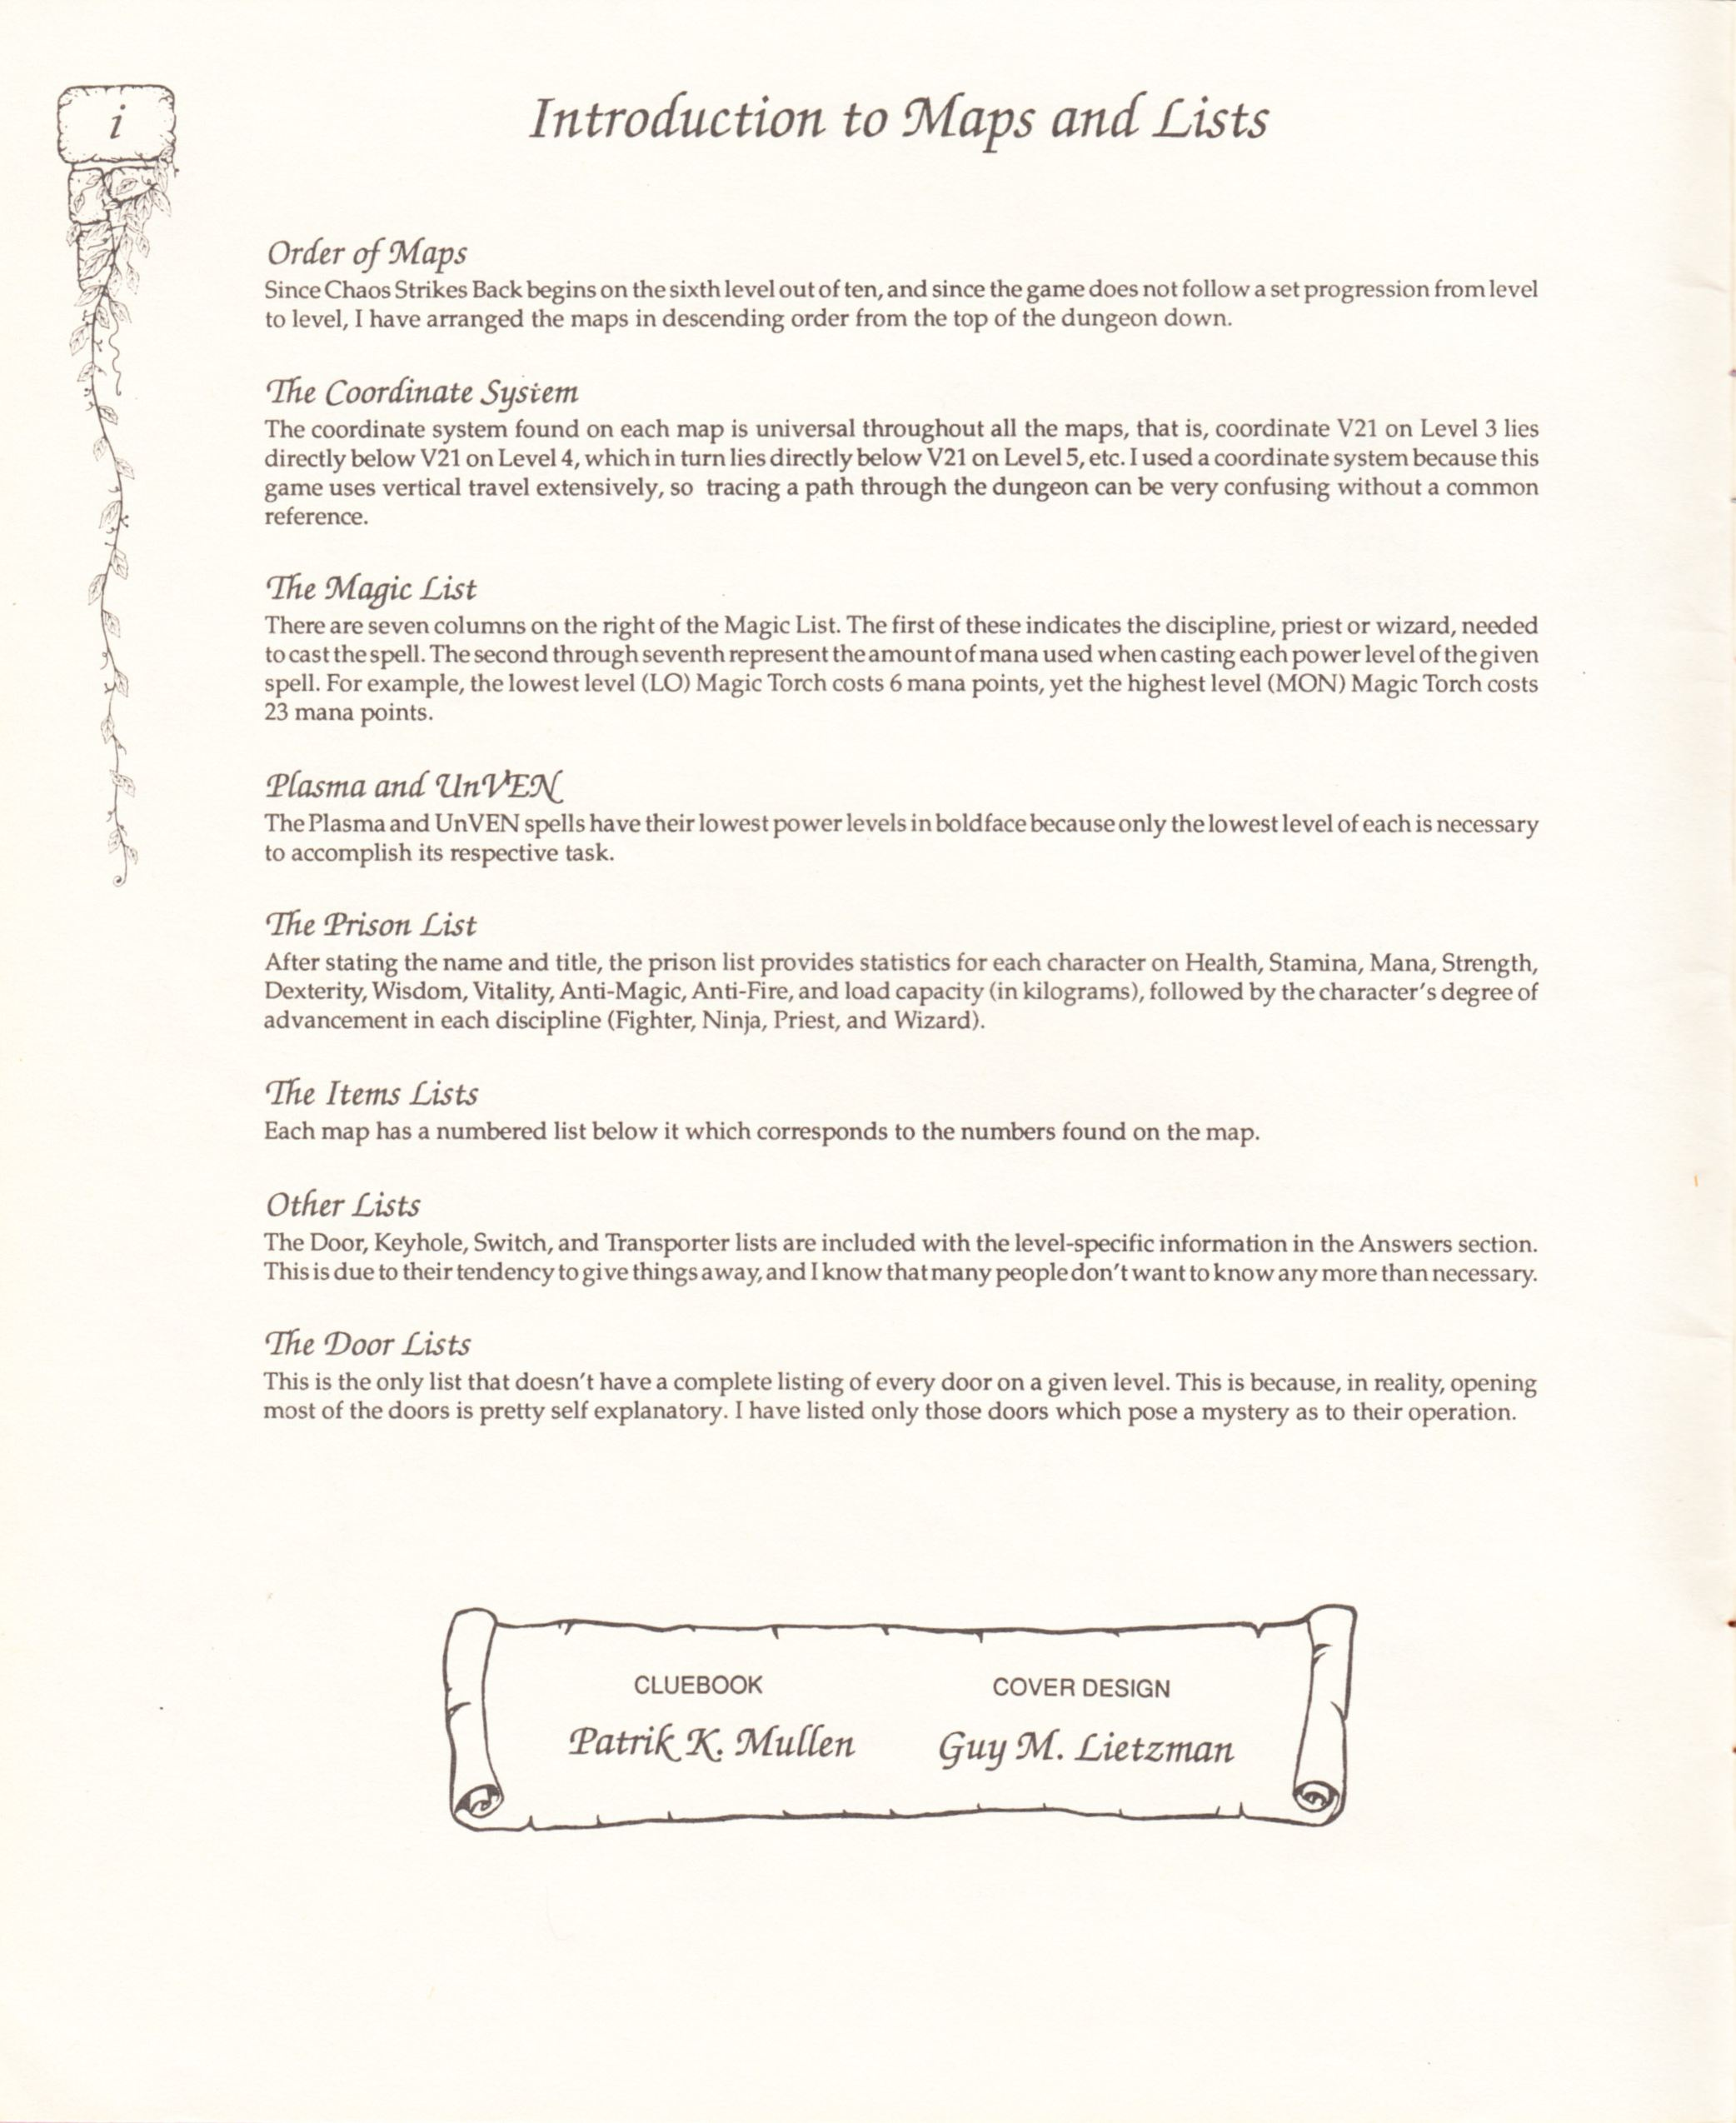 Hint Book - Pat Mullen's Maps, Lists, And Answers For Chaos Strikes Back - US - Page 004 - Scan